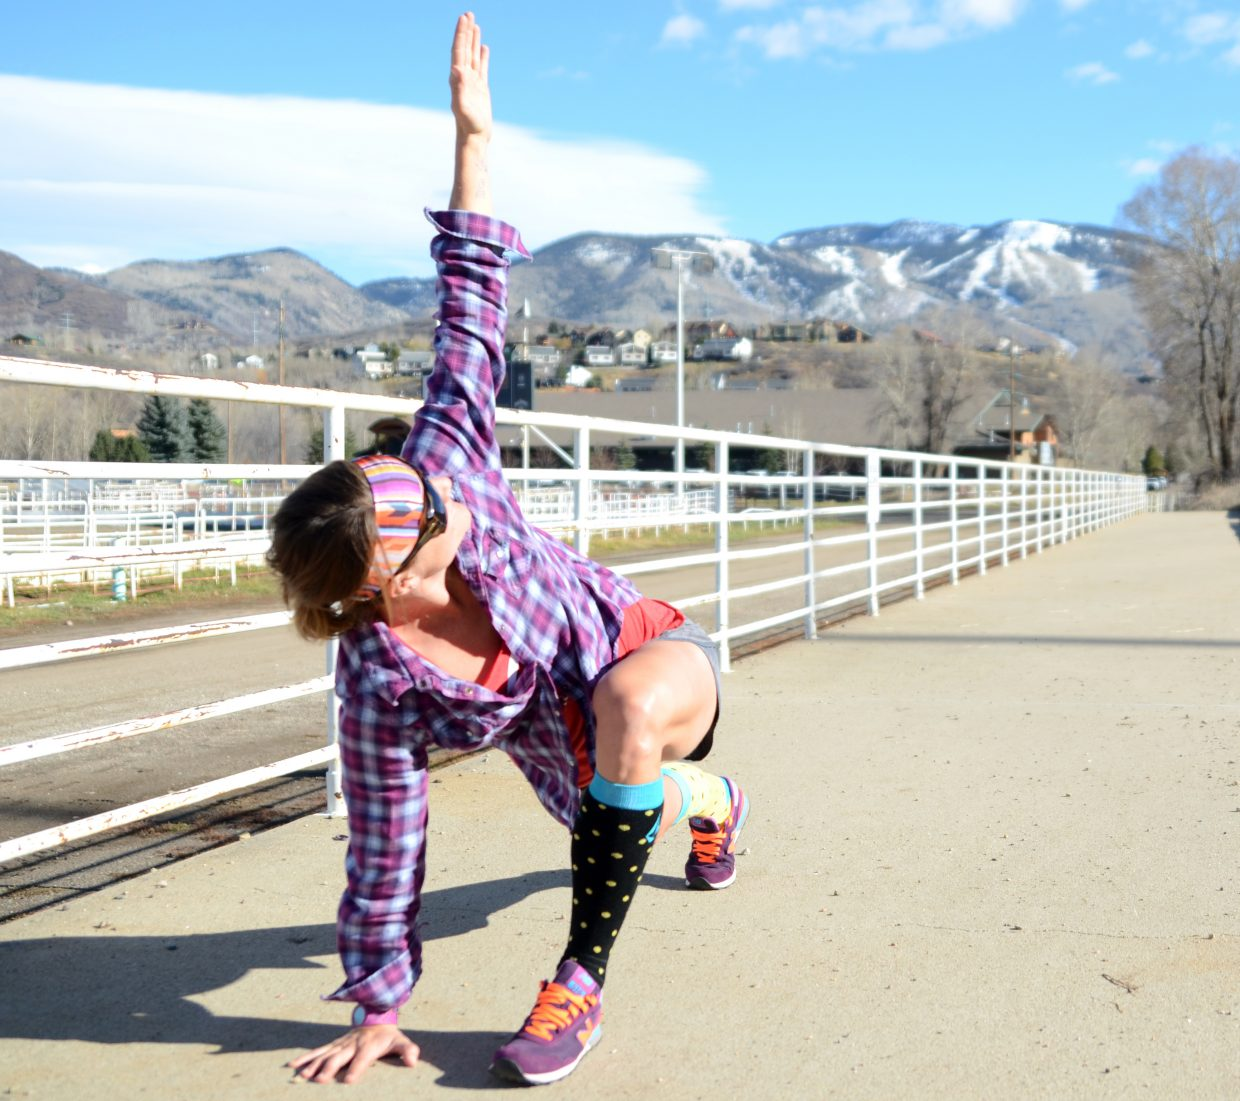 Lunges with a twist is just one example of dynamic stretching that incorporates loosening up a variety of necessary ski muscles at once.